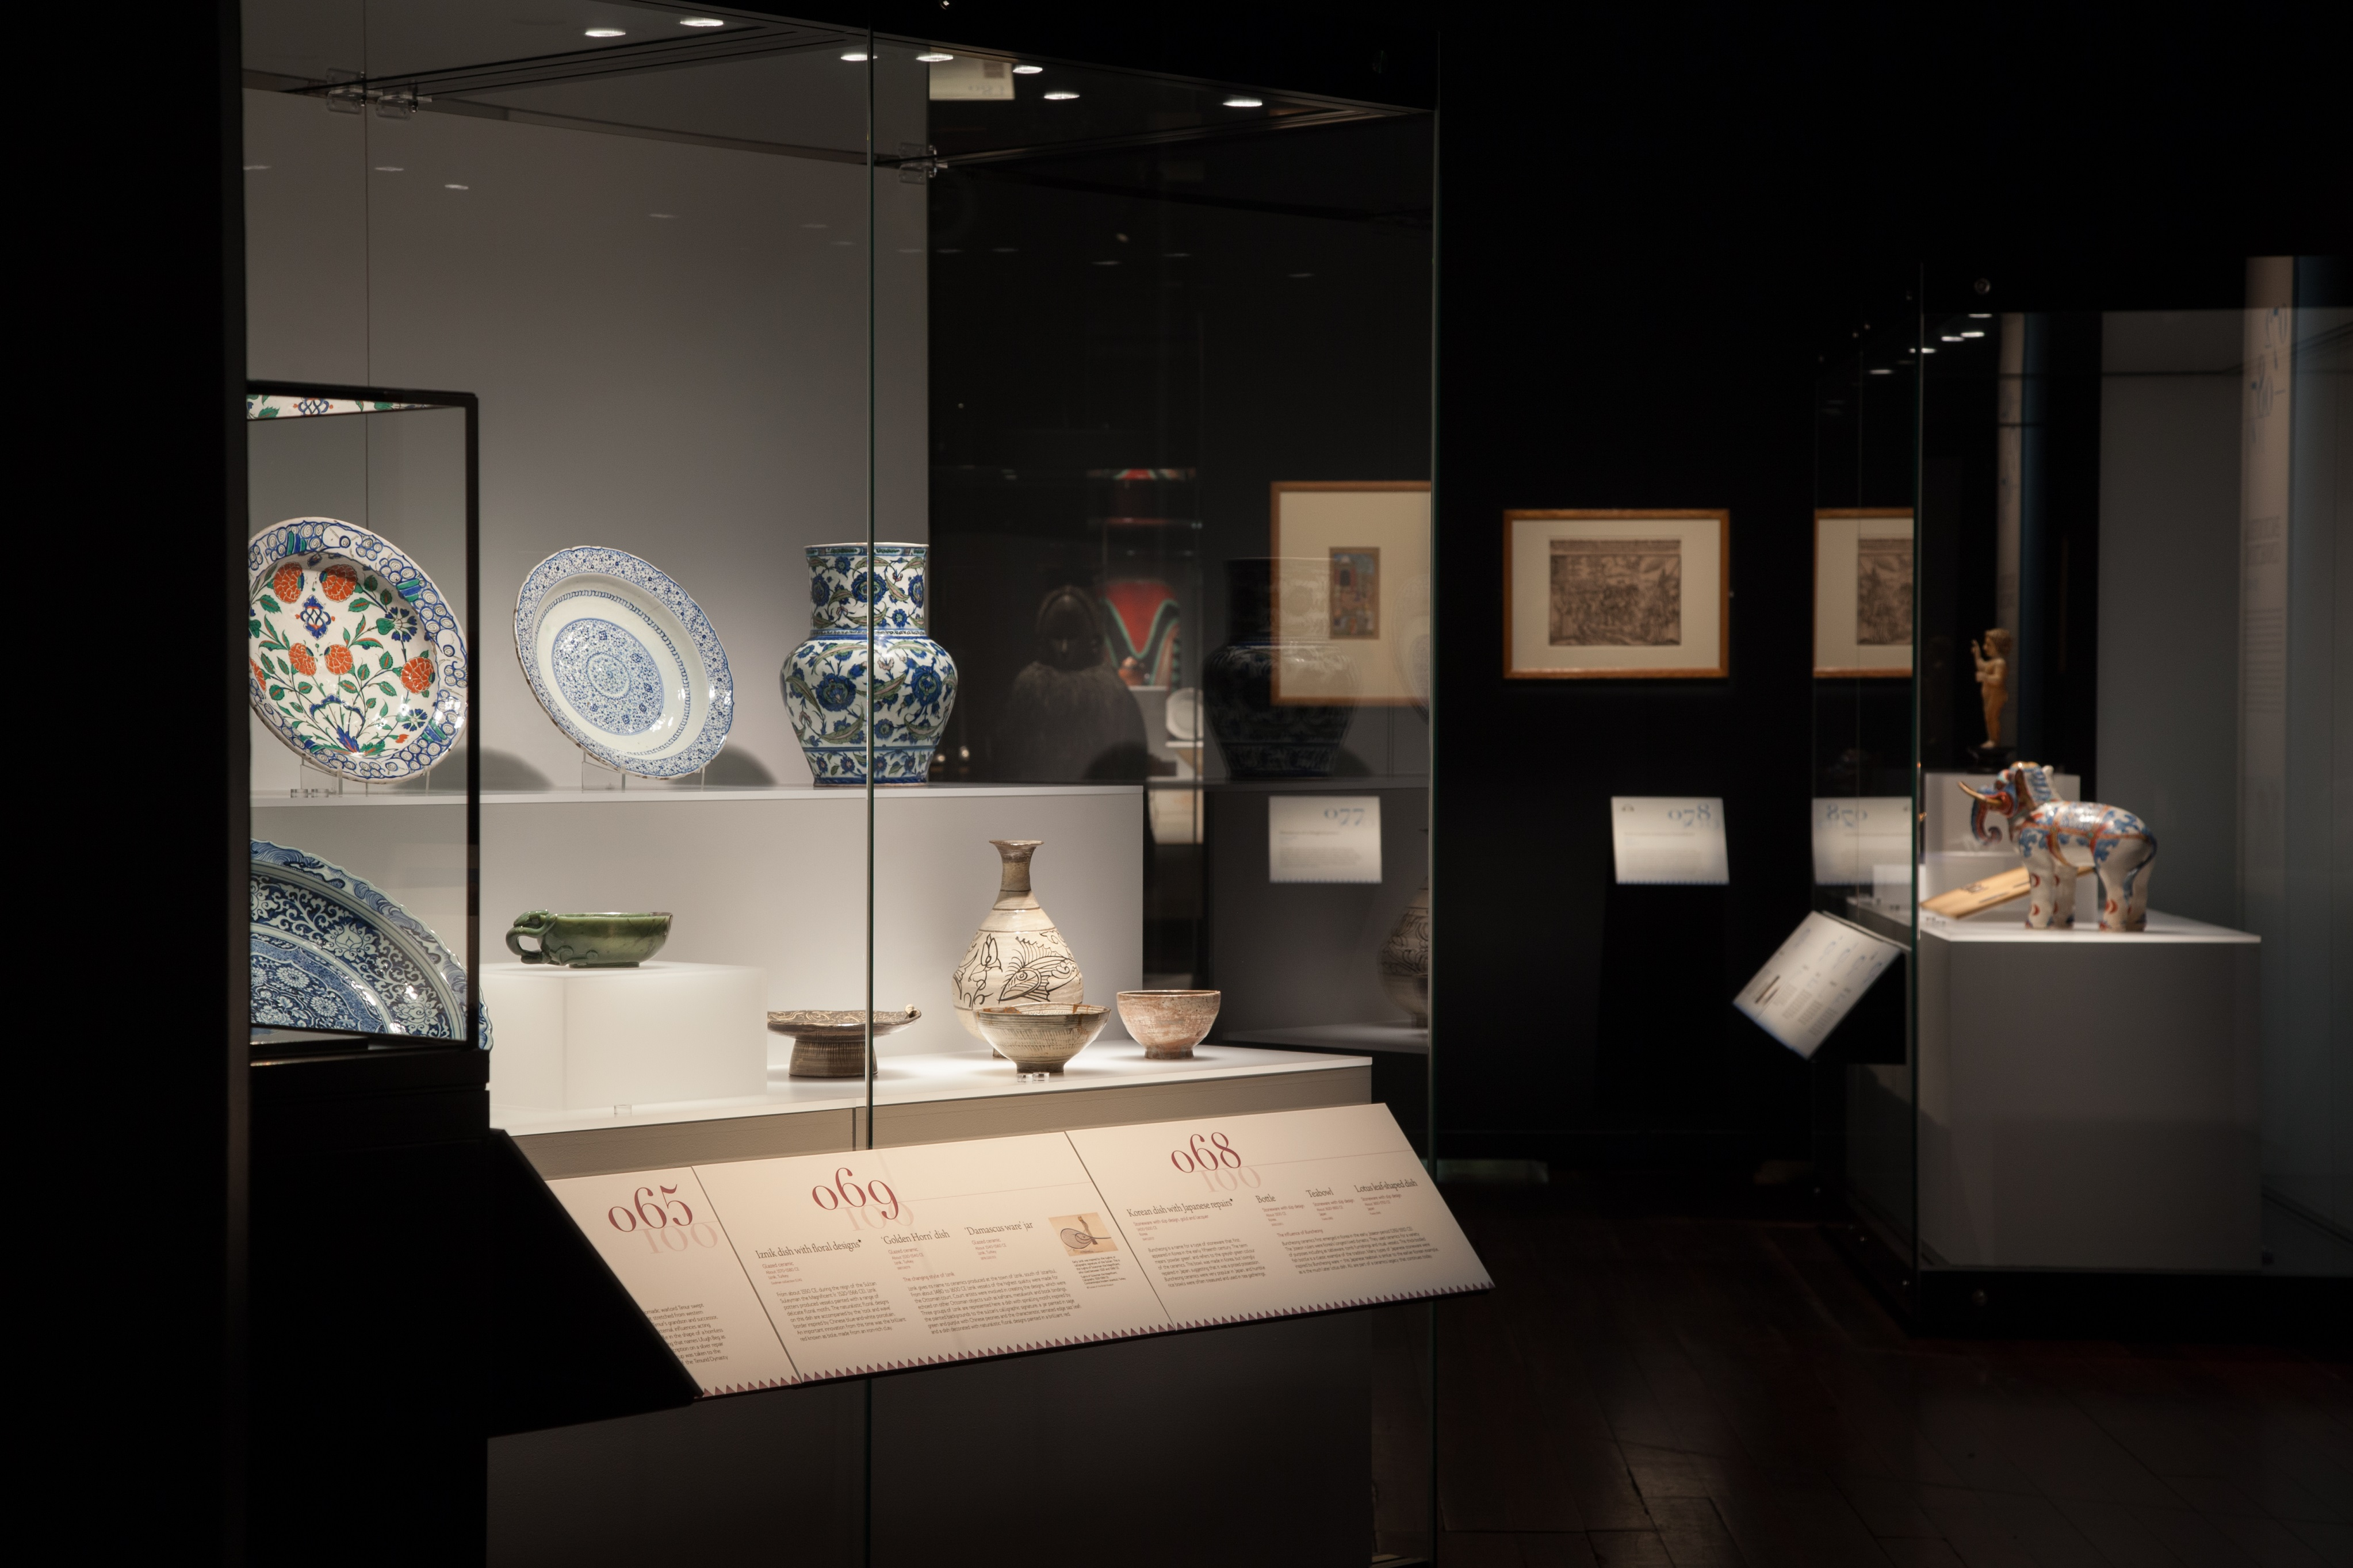 Galleries museums led lighting fixtures systems reviews galleries museums led lighting fixtures systems led lighting museum exhibits museum led arubaitofo Choice Image